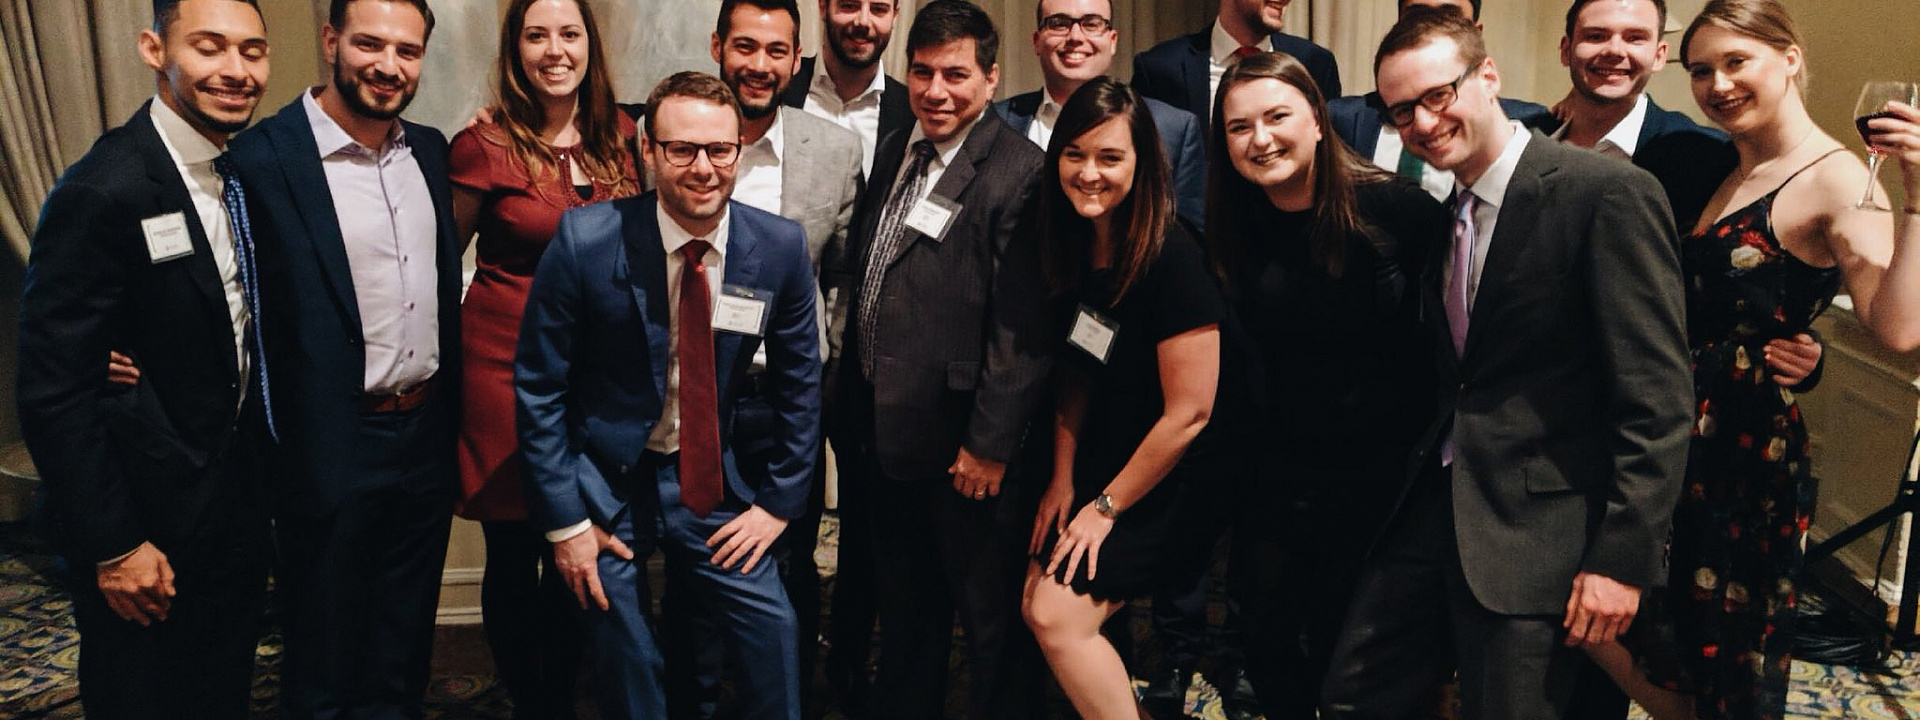 The Entrepreneurs' Club hosts their 27th Annual Toast to Success Dinner